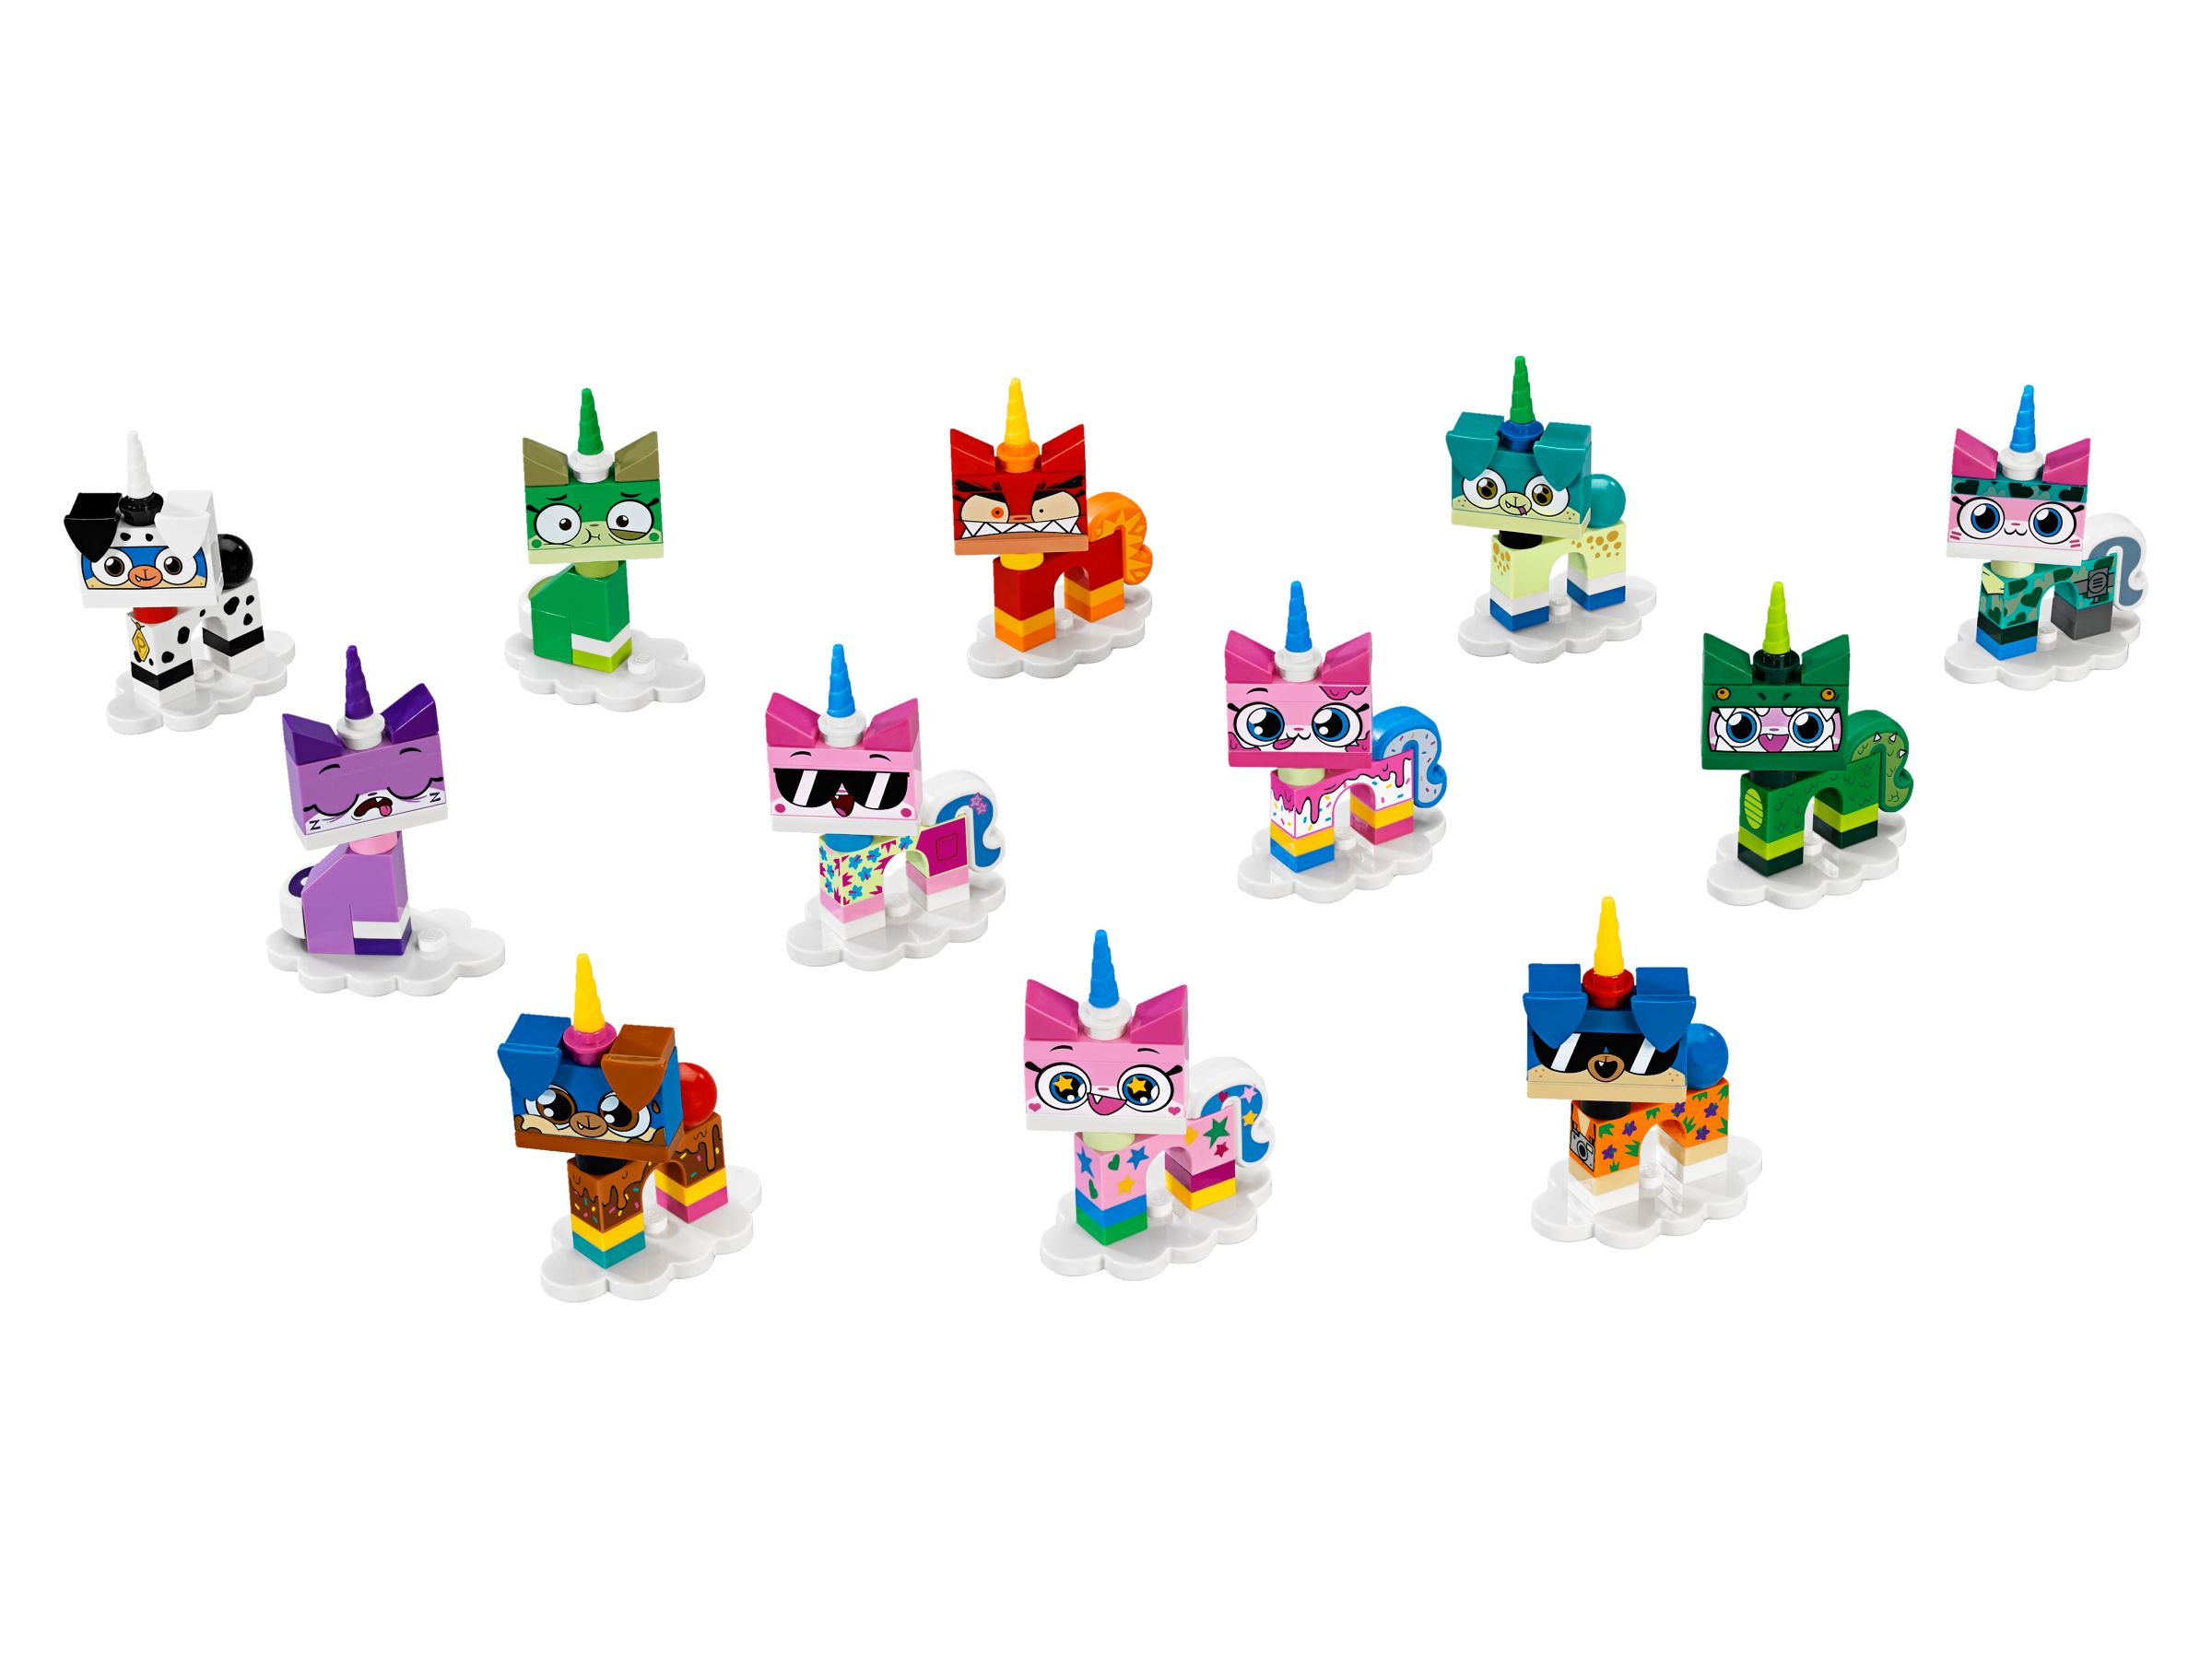 LEGO Collectable Minifigures 41775 Unikitty Sammelserie 1 LEGO_41775.jpg